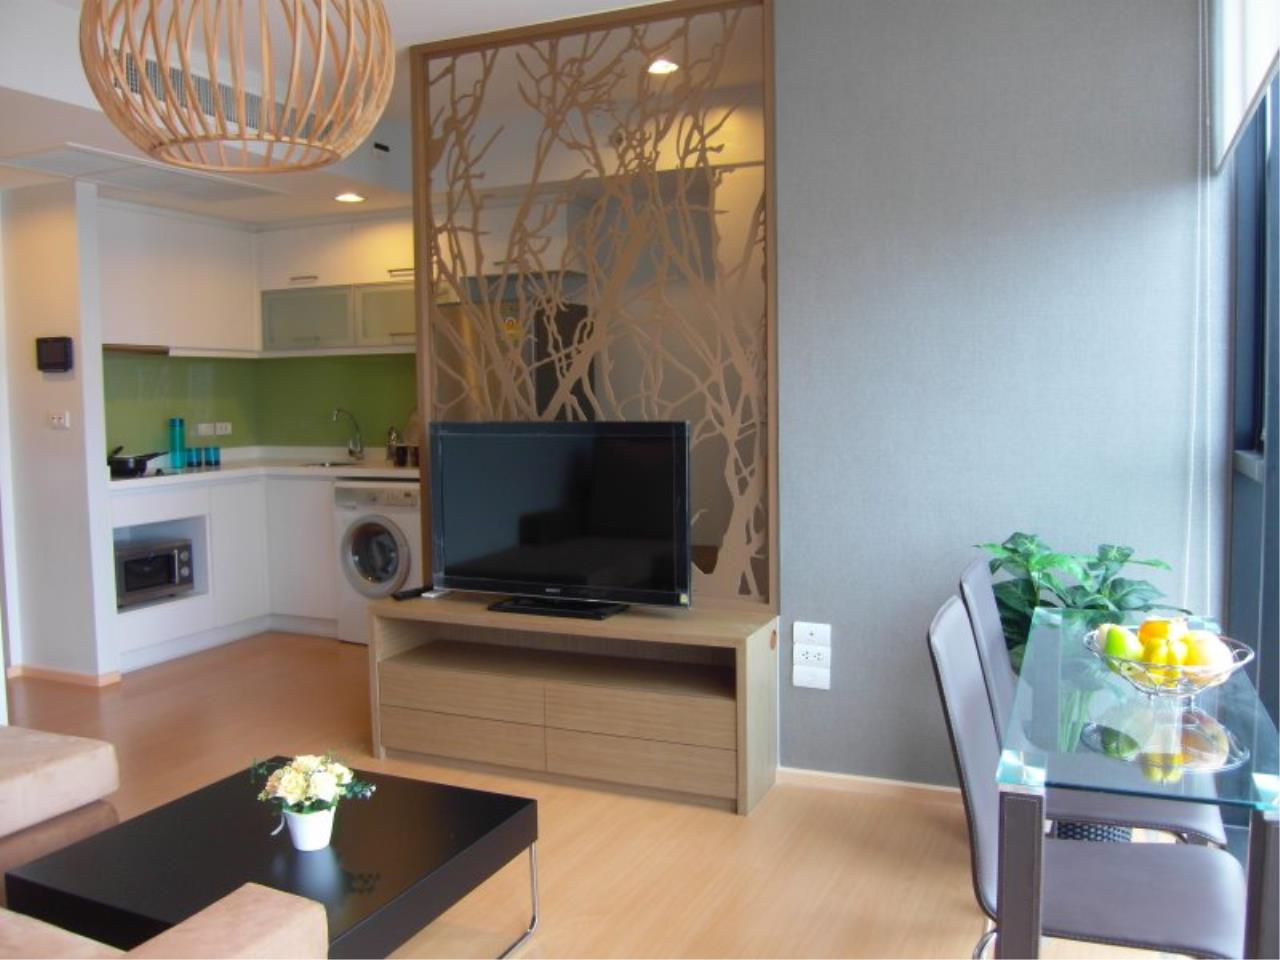 Piri Property Agency's Cozy 1 Bedroom in the Alcove Thonglor 10 building for rent on high floor 2